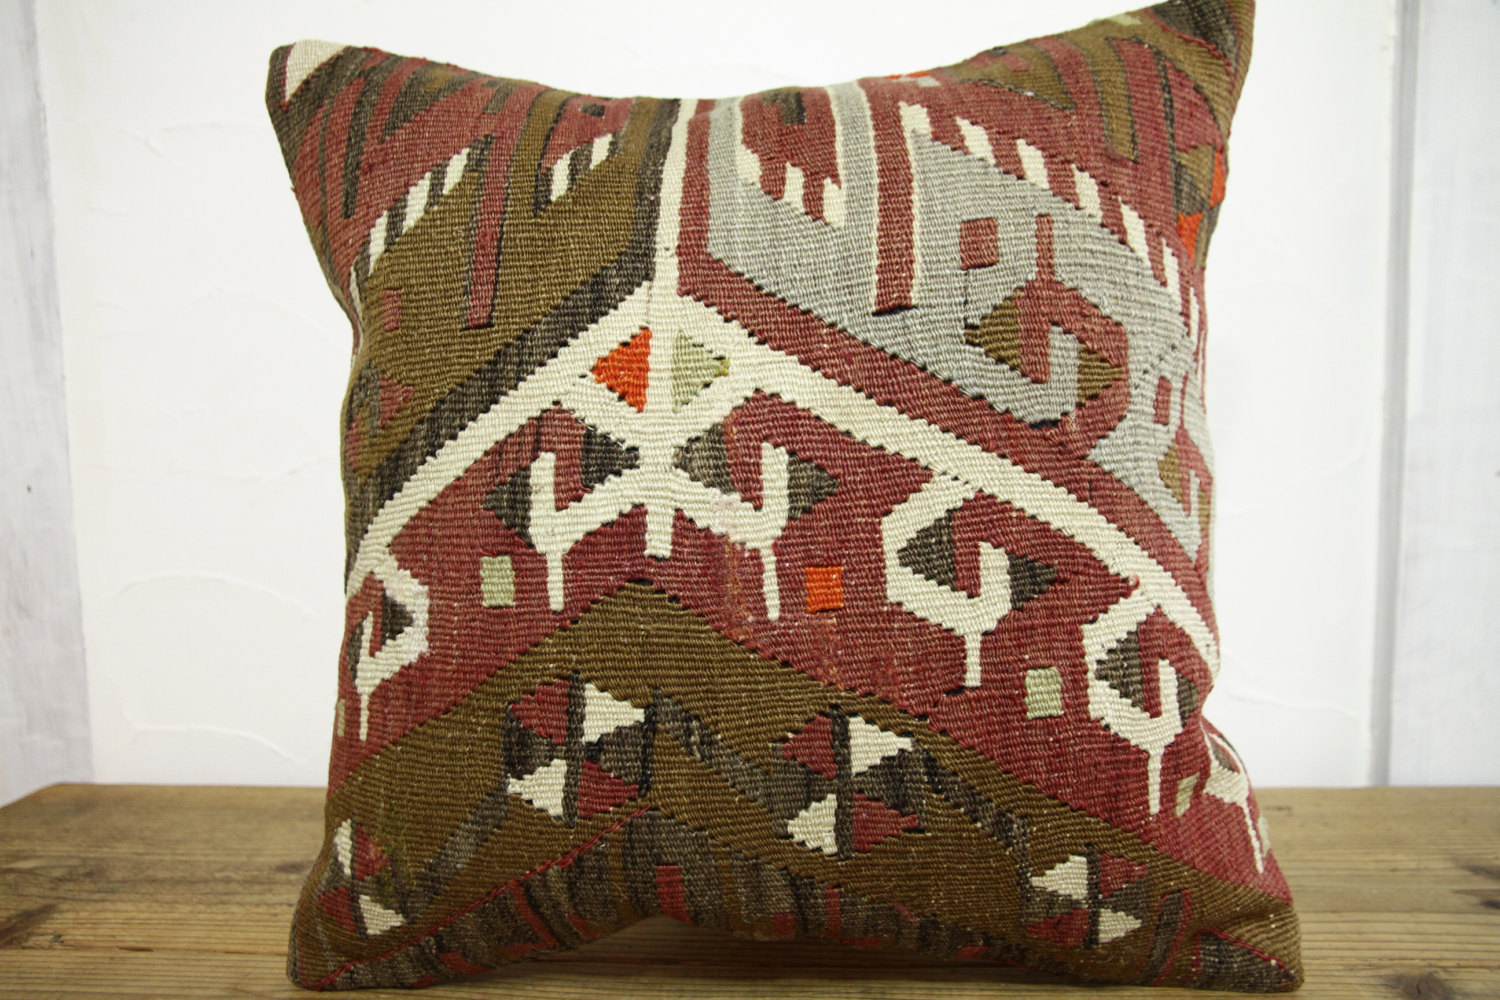 Kilim Pillows |18x18| Decorative Pillows | 402 | Accent Pillows, Kilim cushion